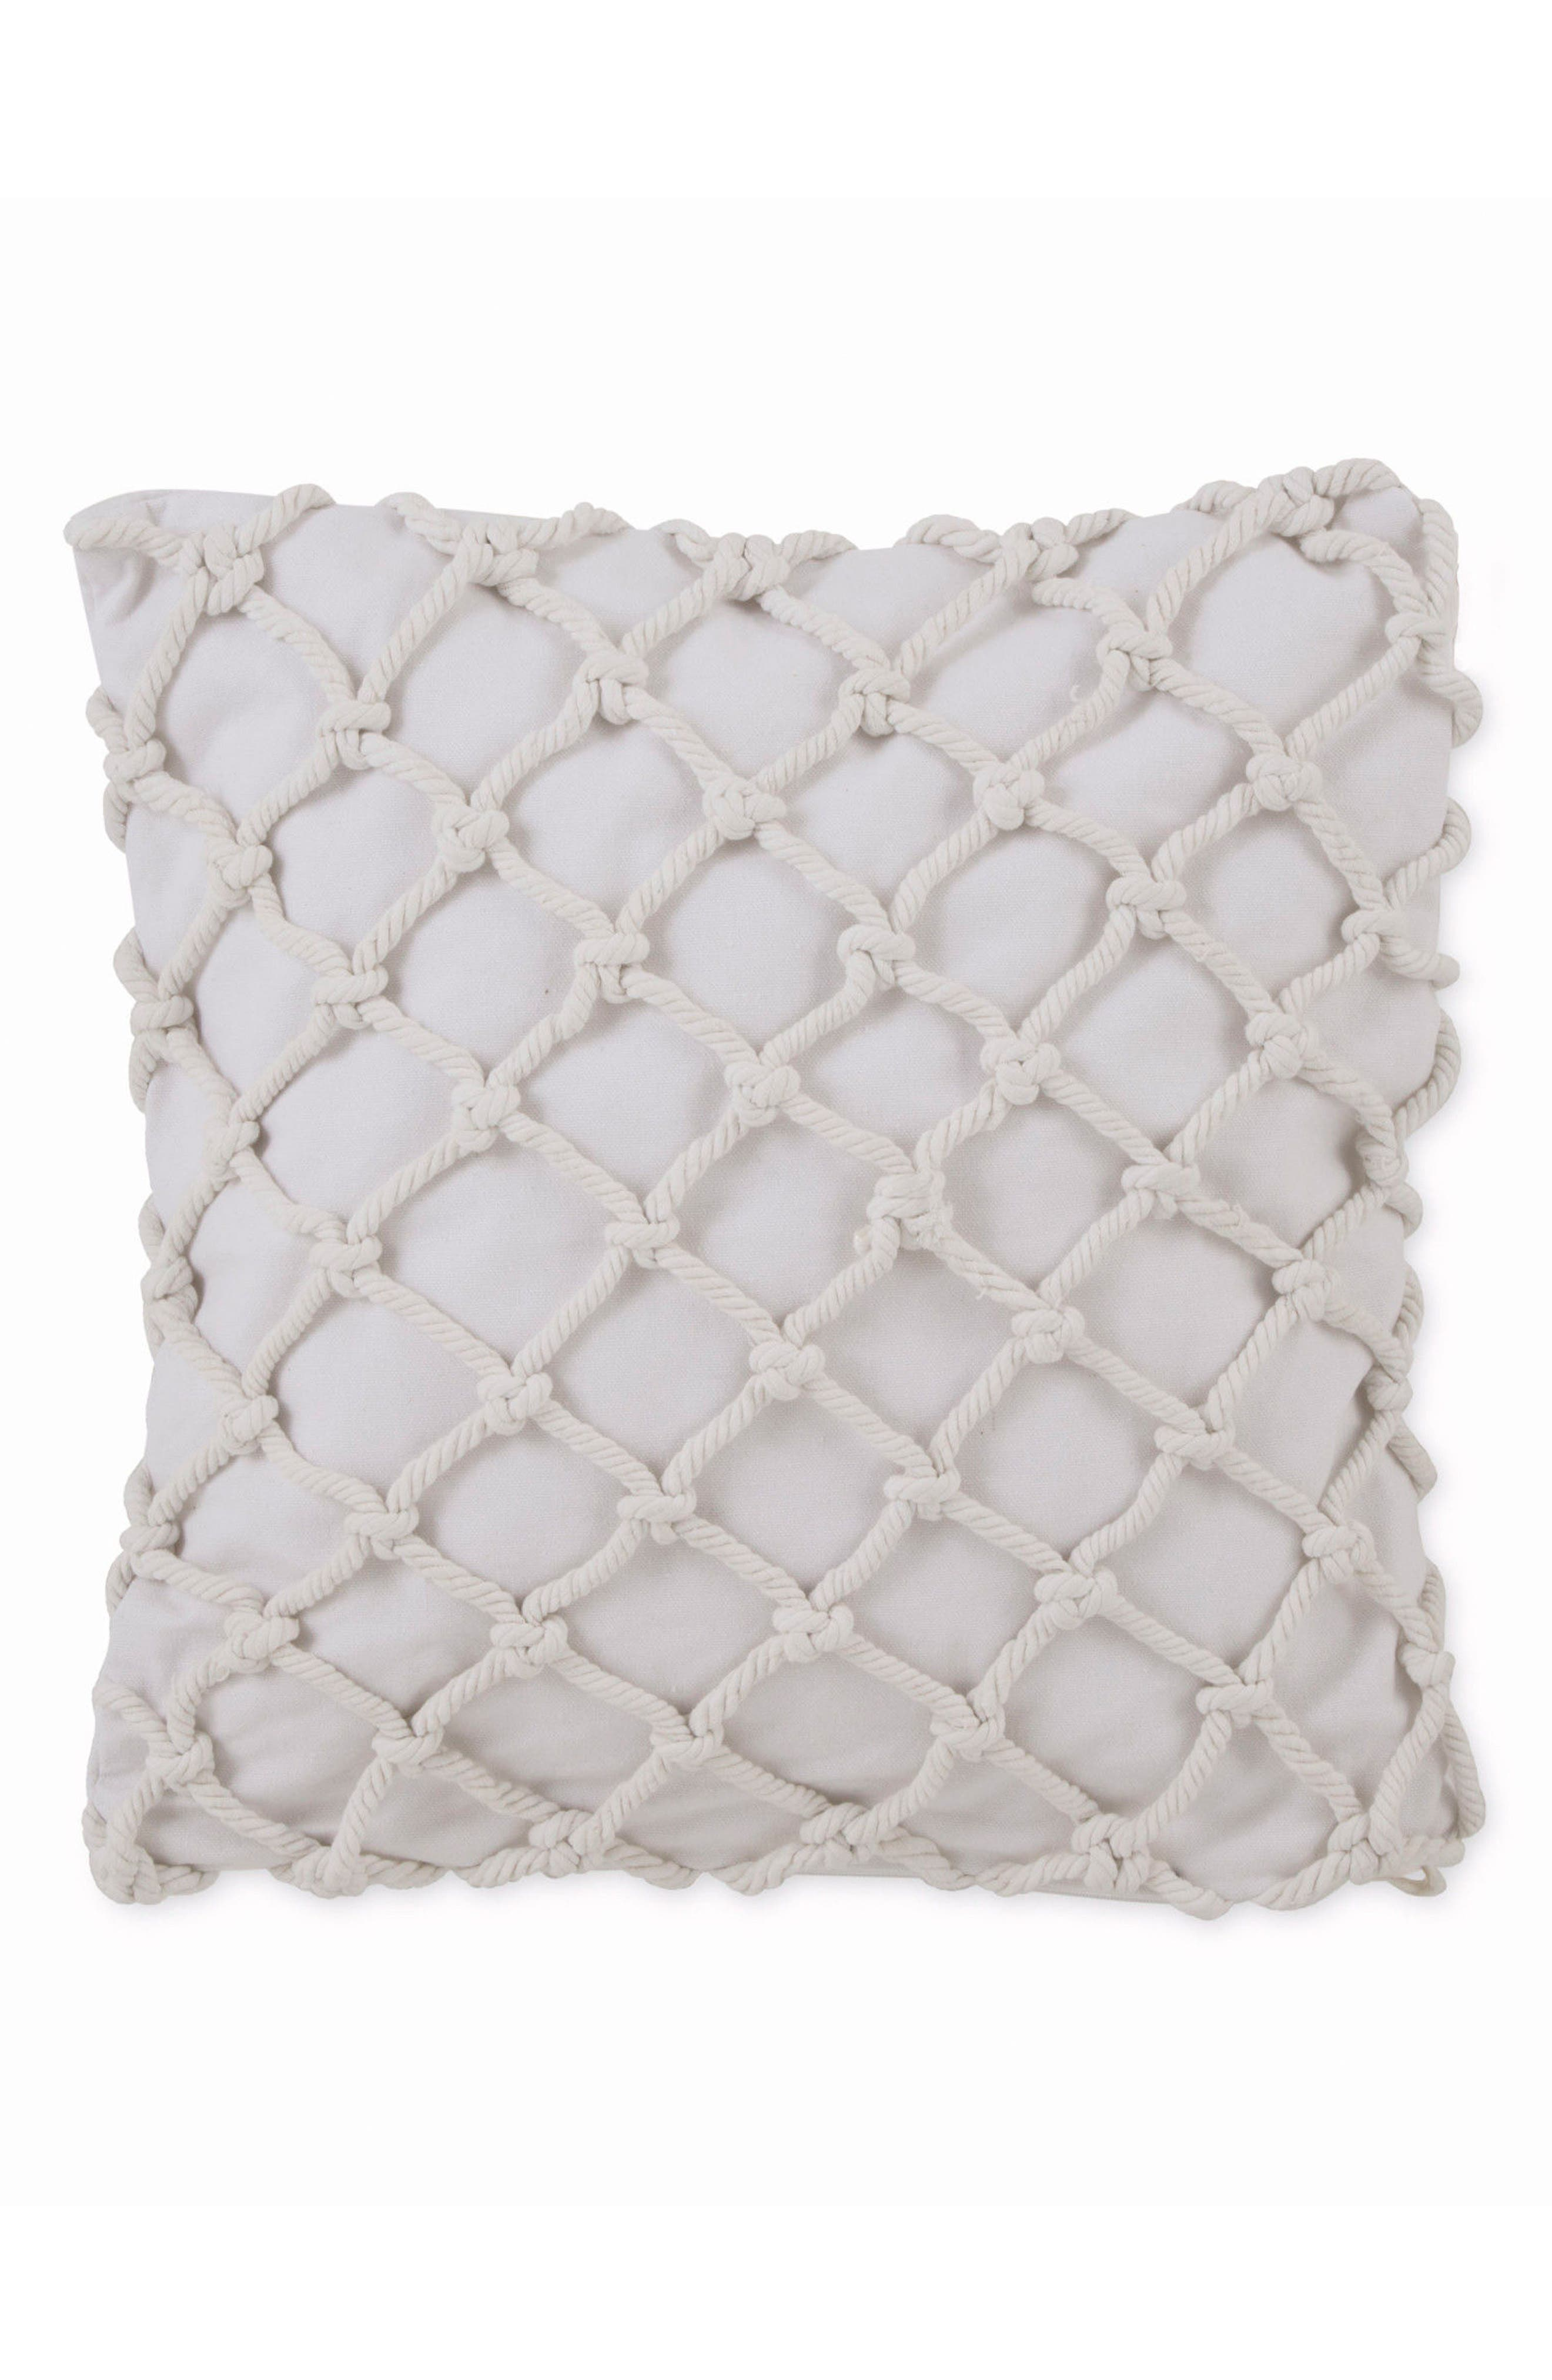 Knotted Rope Square Accent Pillow,                         Main,                         color, White